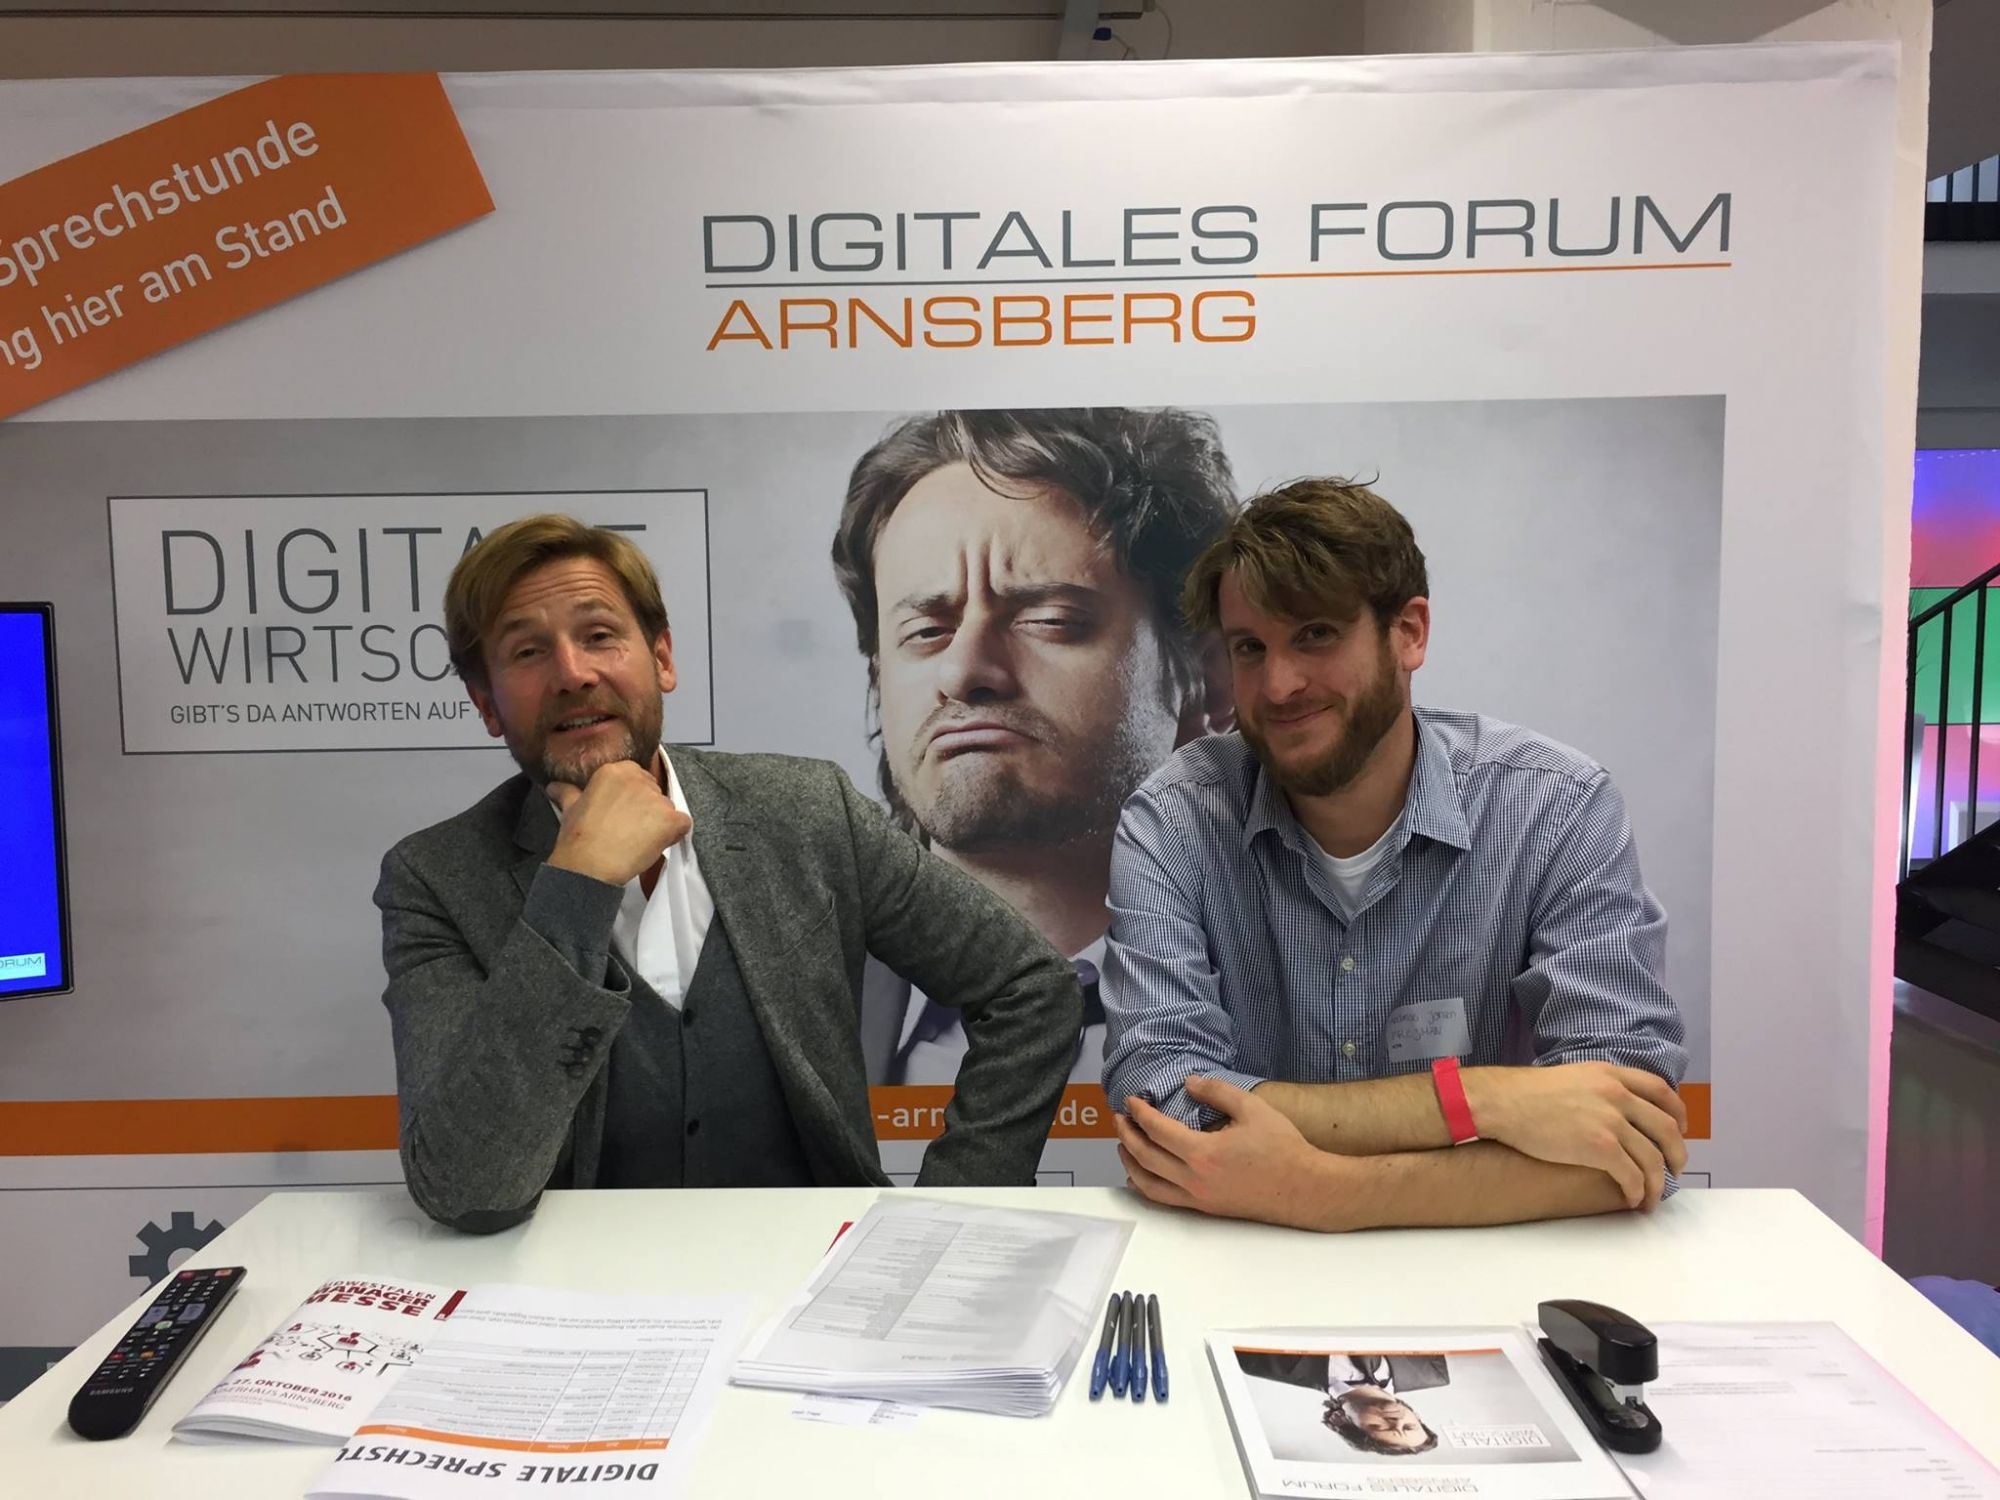 Digitales Forum Arnsberg auf der Südwestfalen Manager Messe